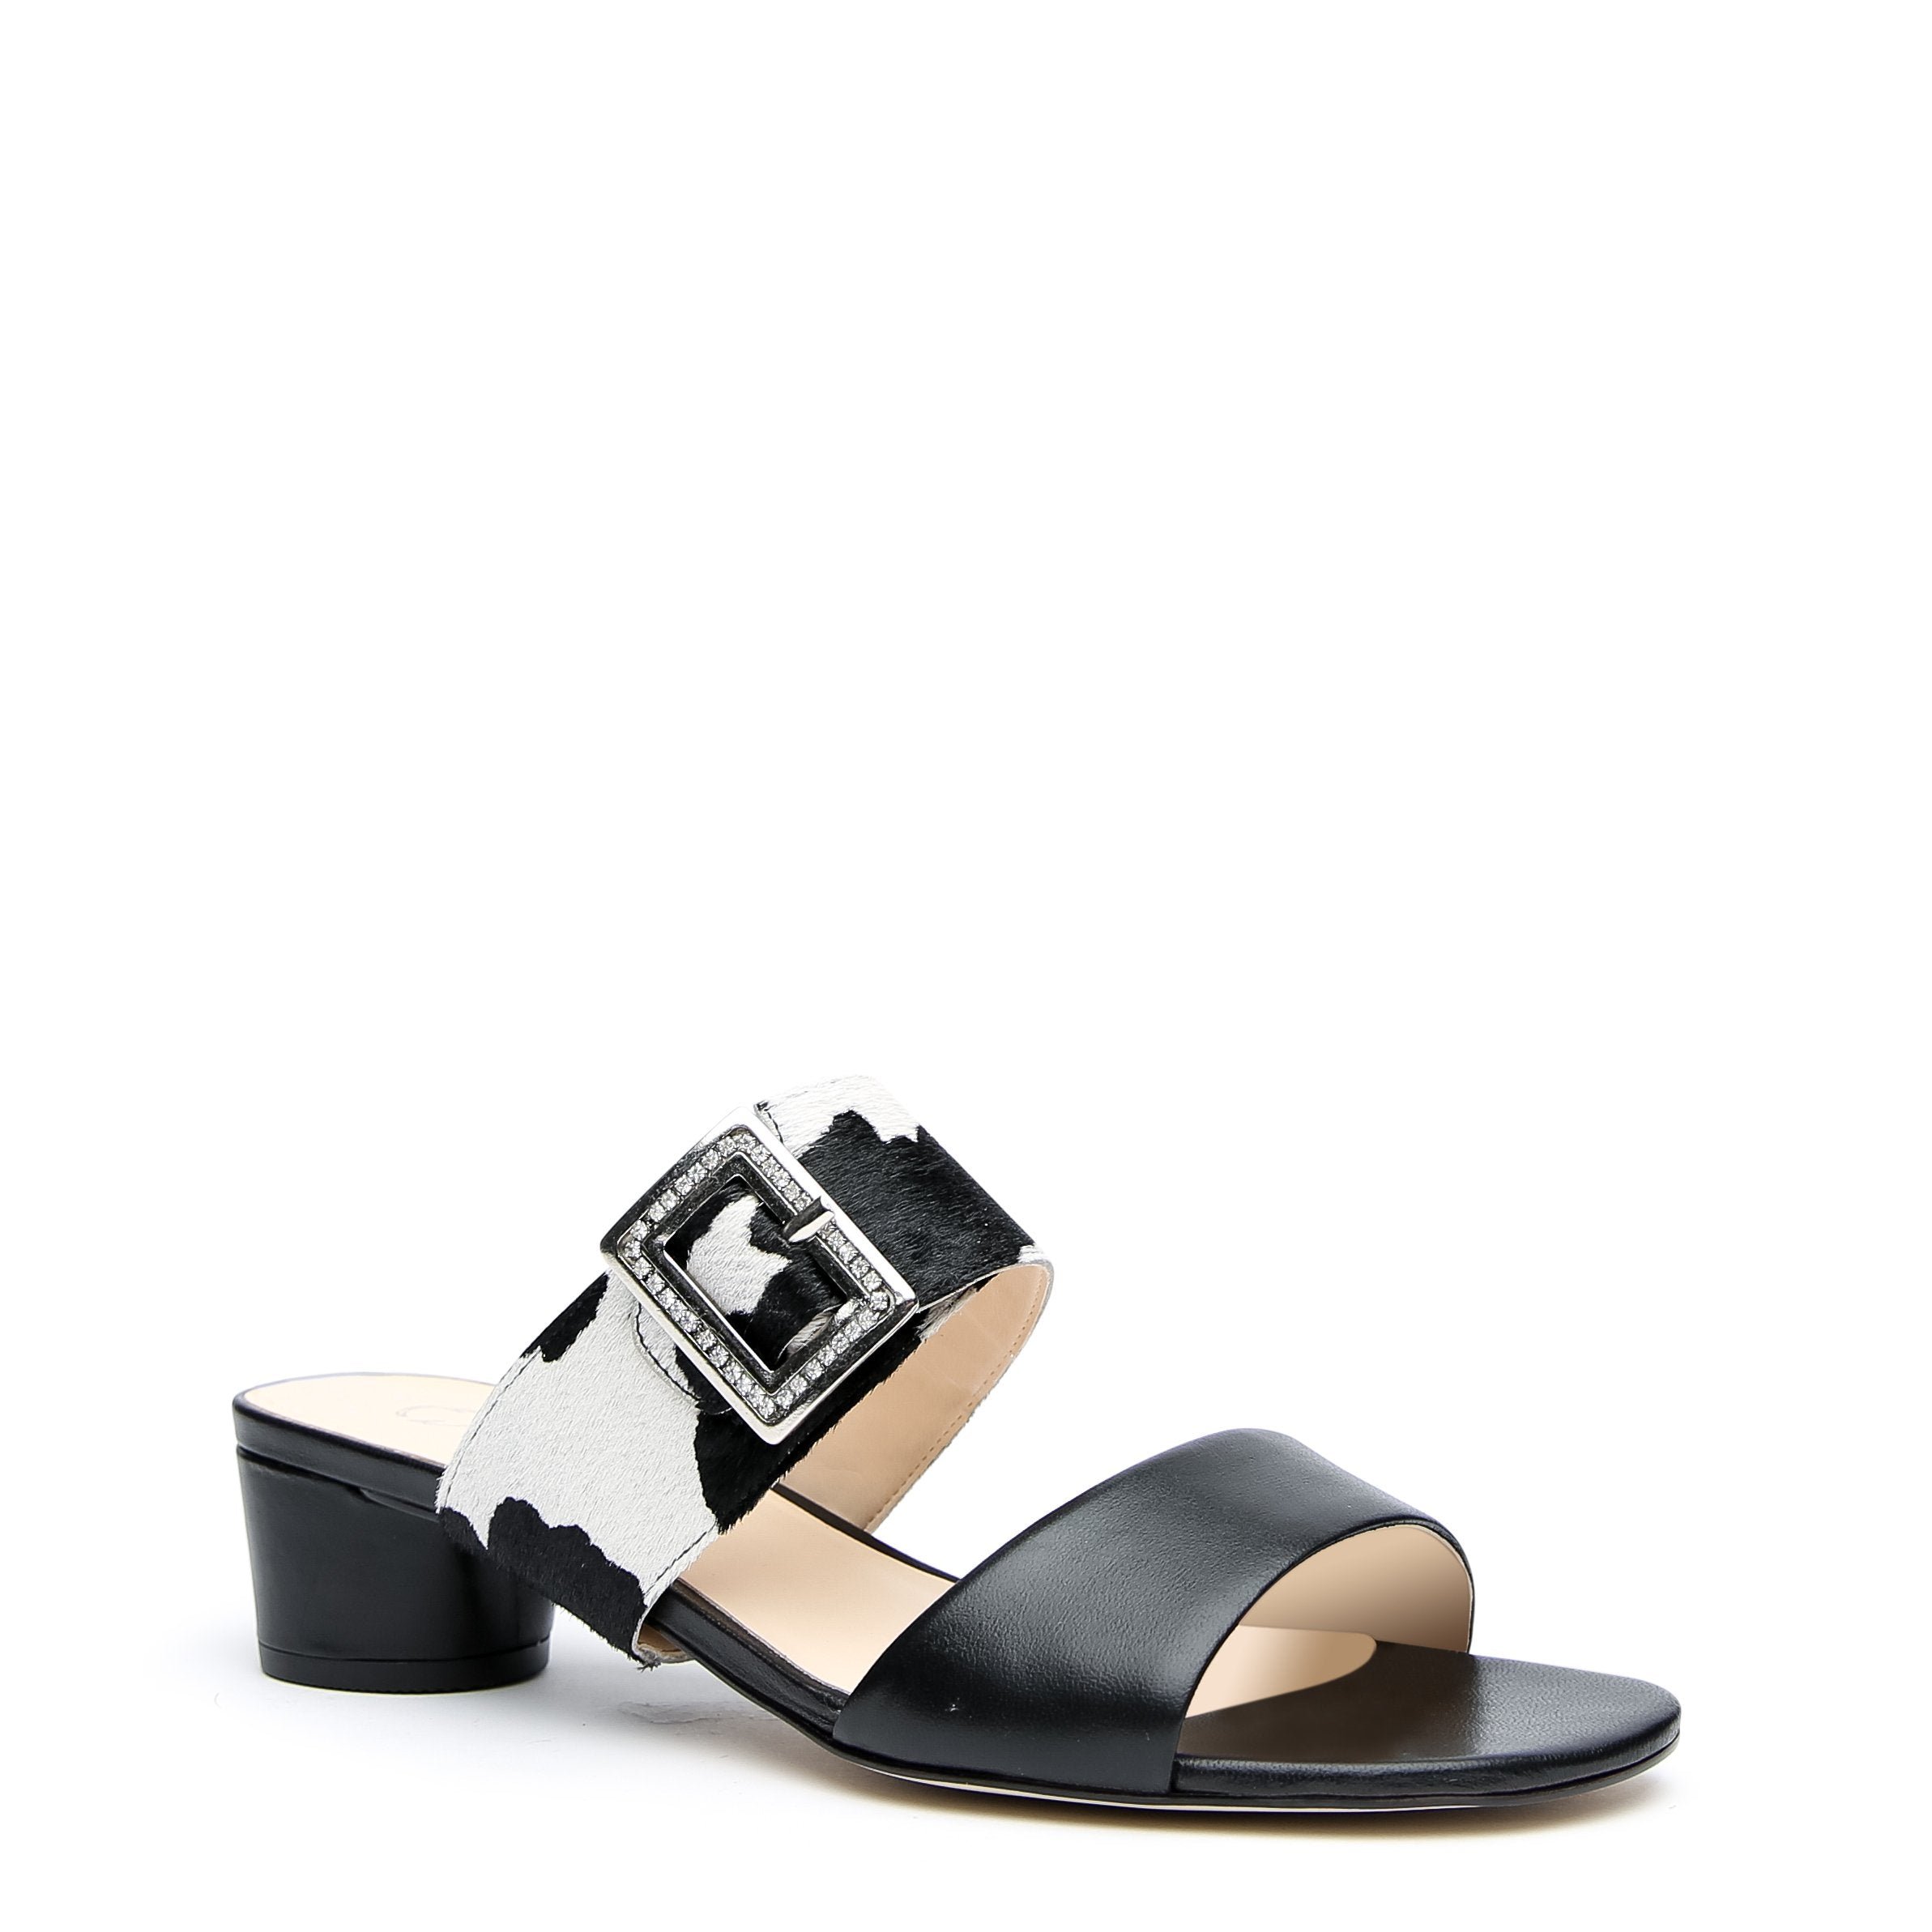 Black Custom Sandals + Cow Grace Strap | Alterre Make A Sandal - Sustainable Footwear & Ethical Shoes